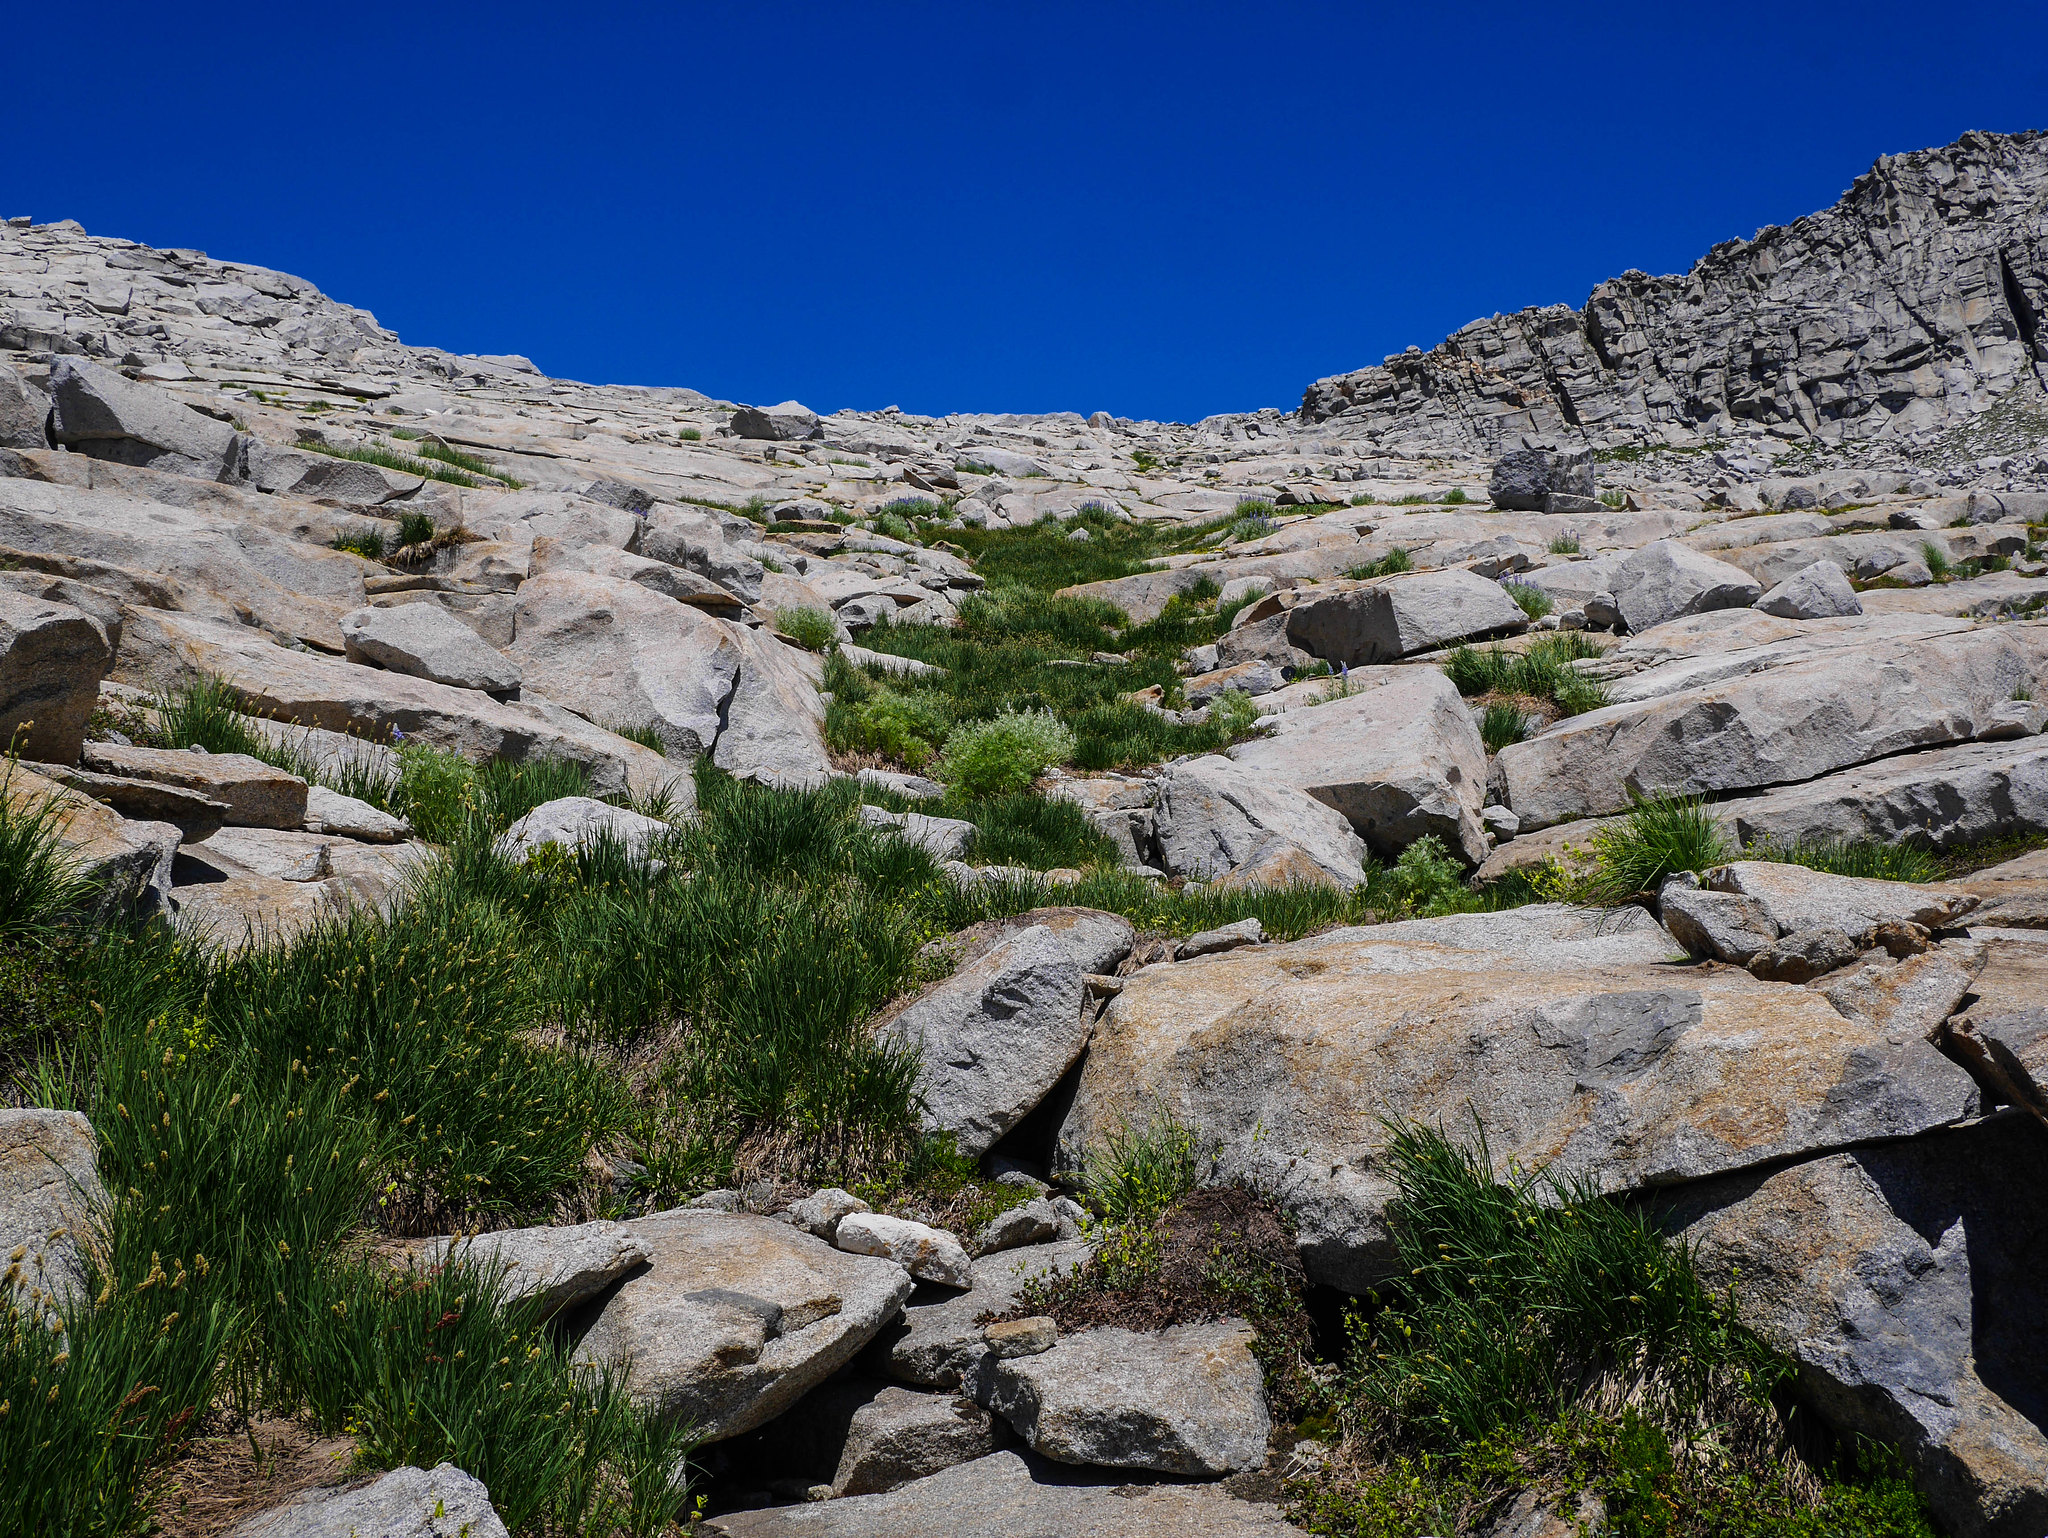 Climbing a grassy gully up to Ptetrodactyl Pass